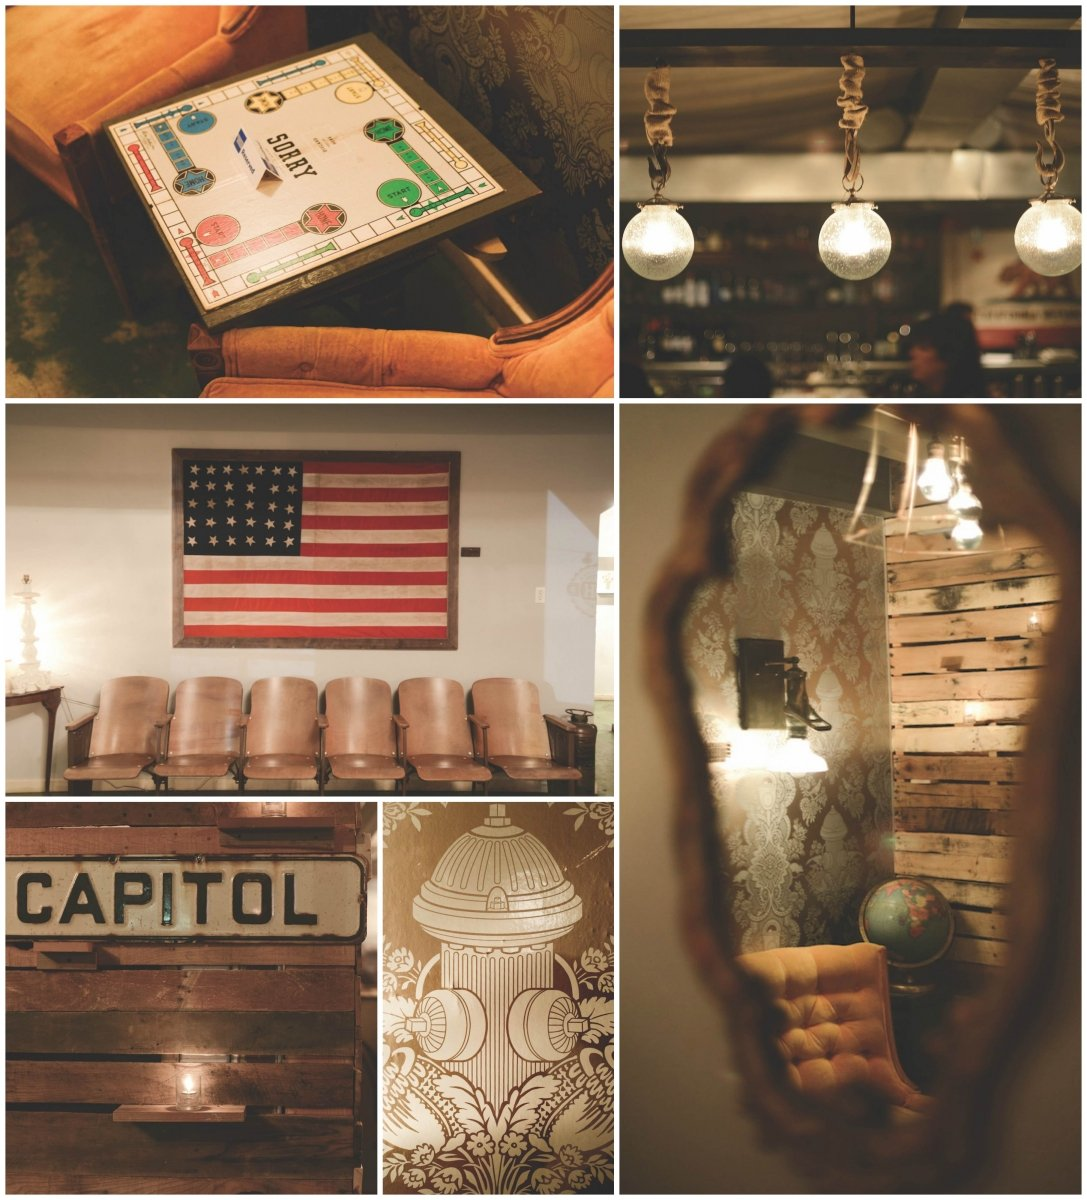 """It's very warm with a lot of low lighting. The idea was to create an environment where [it felt as if] you were walking into someone's home,"" says Johnson of the design concept for Hook & Ladder. Clockwise from top left: Board games like Sorry serve as tabletops in the restaurant's ""game room""; upcycled ceiling lights crafted from winch hooks softly illuminate the main dining room; the ""game room"" alcove features a light fixture made from an antique fire-hose nozzle, which references the restaurant's namesake, the Mutual Hook and Ladder Company, an all-volunteer group that formed in 1850 and became Sacramento's first fire corps; Johnson selected wallpaper with images of fire hydrants for the game room; a local street sign that Johnson found at the Antique Trove in Roseville hangs against a wall constructed from shipping pallets; a commissioned American flag with 31 stars to symbolize California's birth order in the Union decorates the waiting area (Photos by Ryan Donahue)"